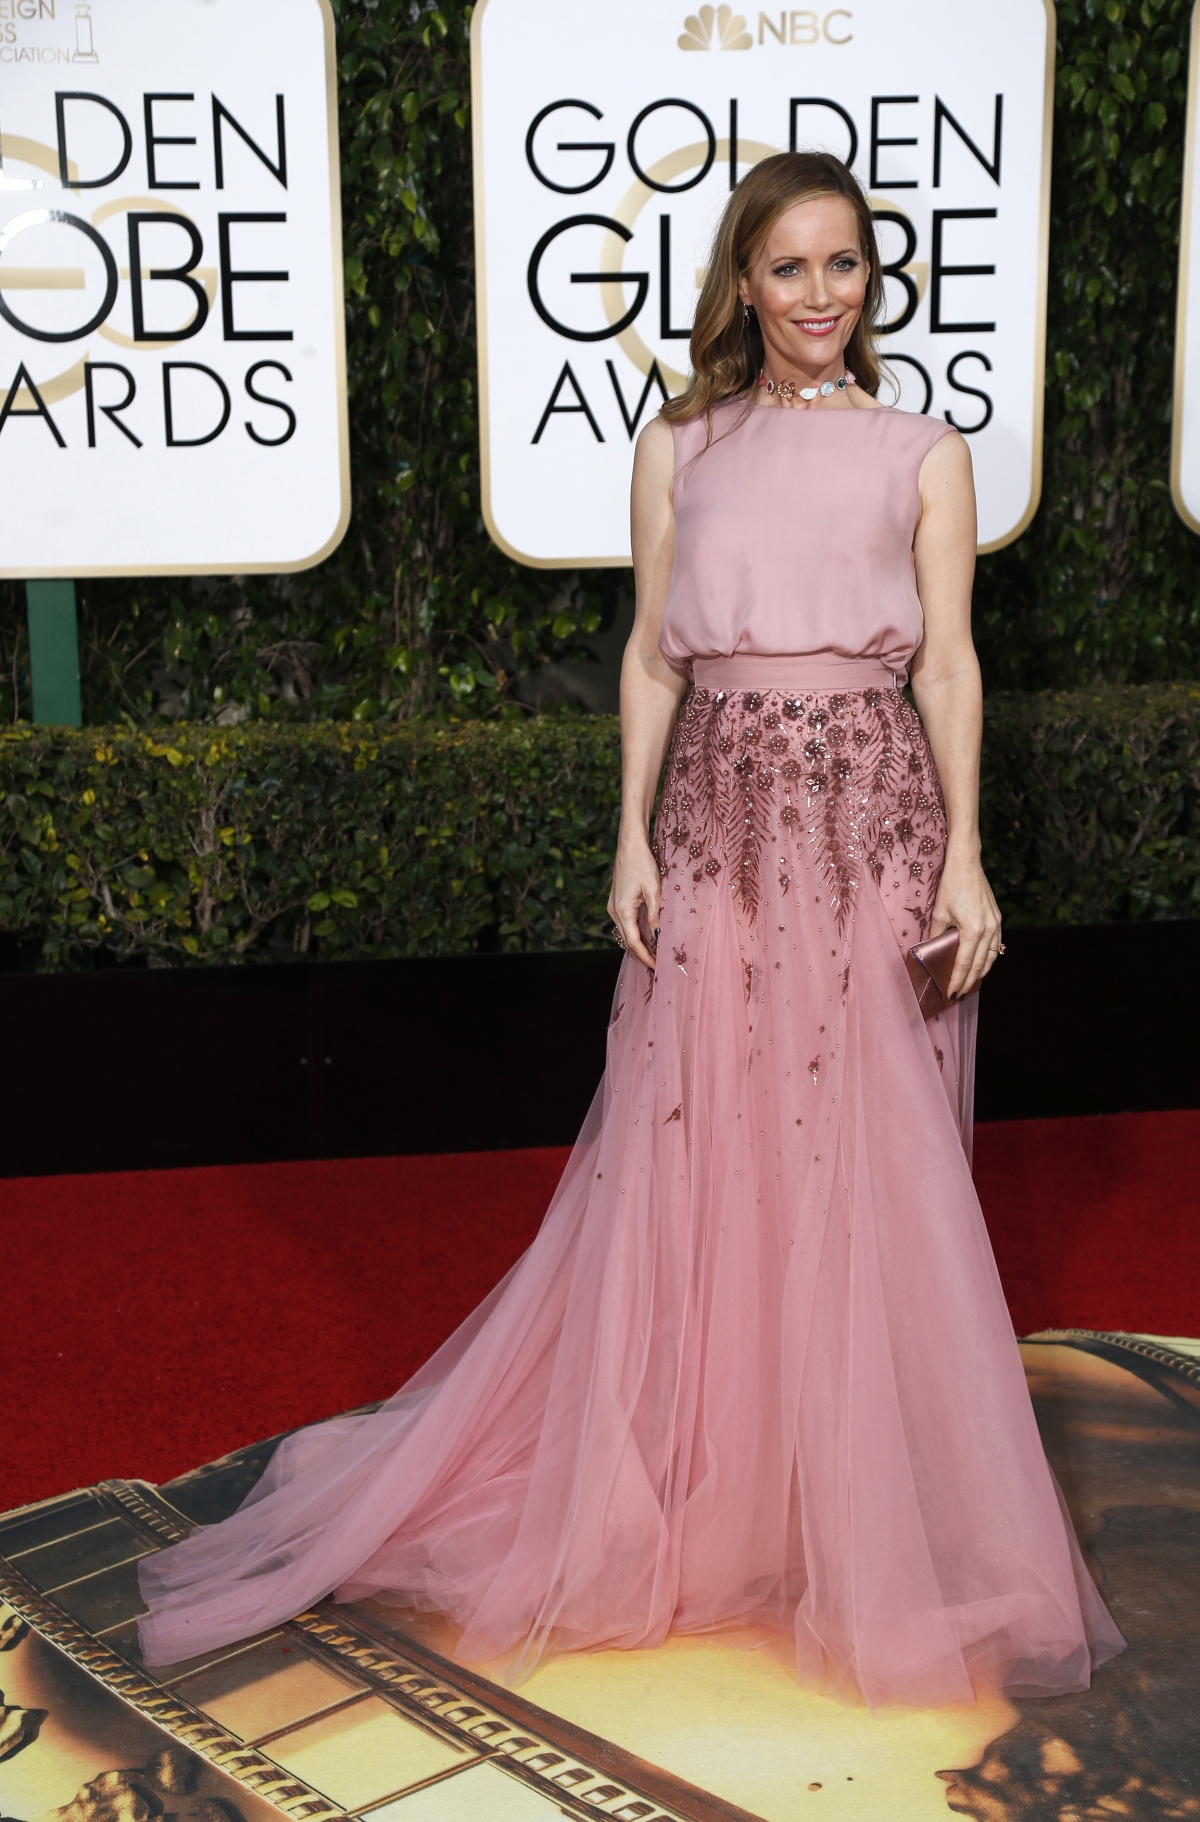 Golden Globes 2016: best dressed red carpet